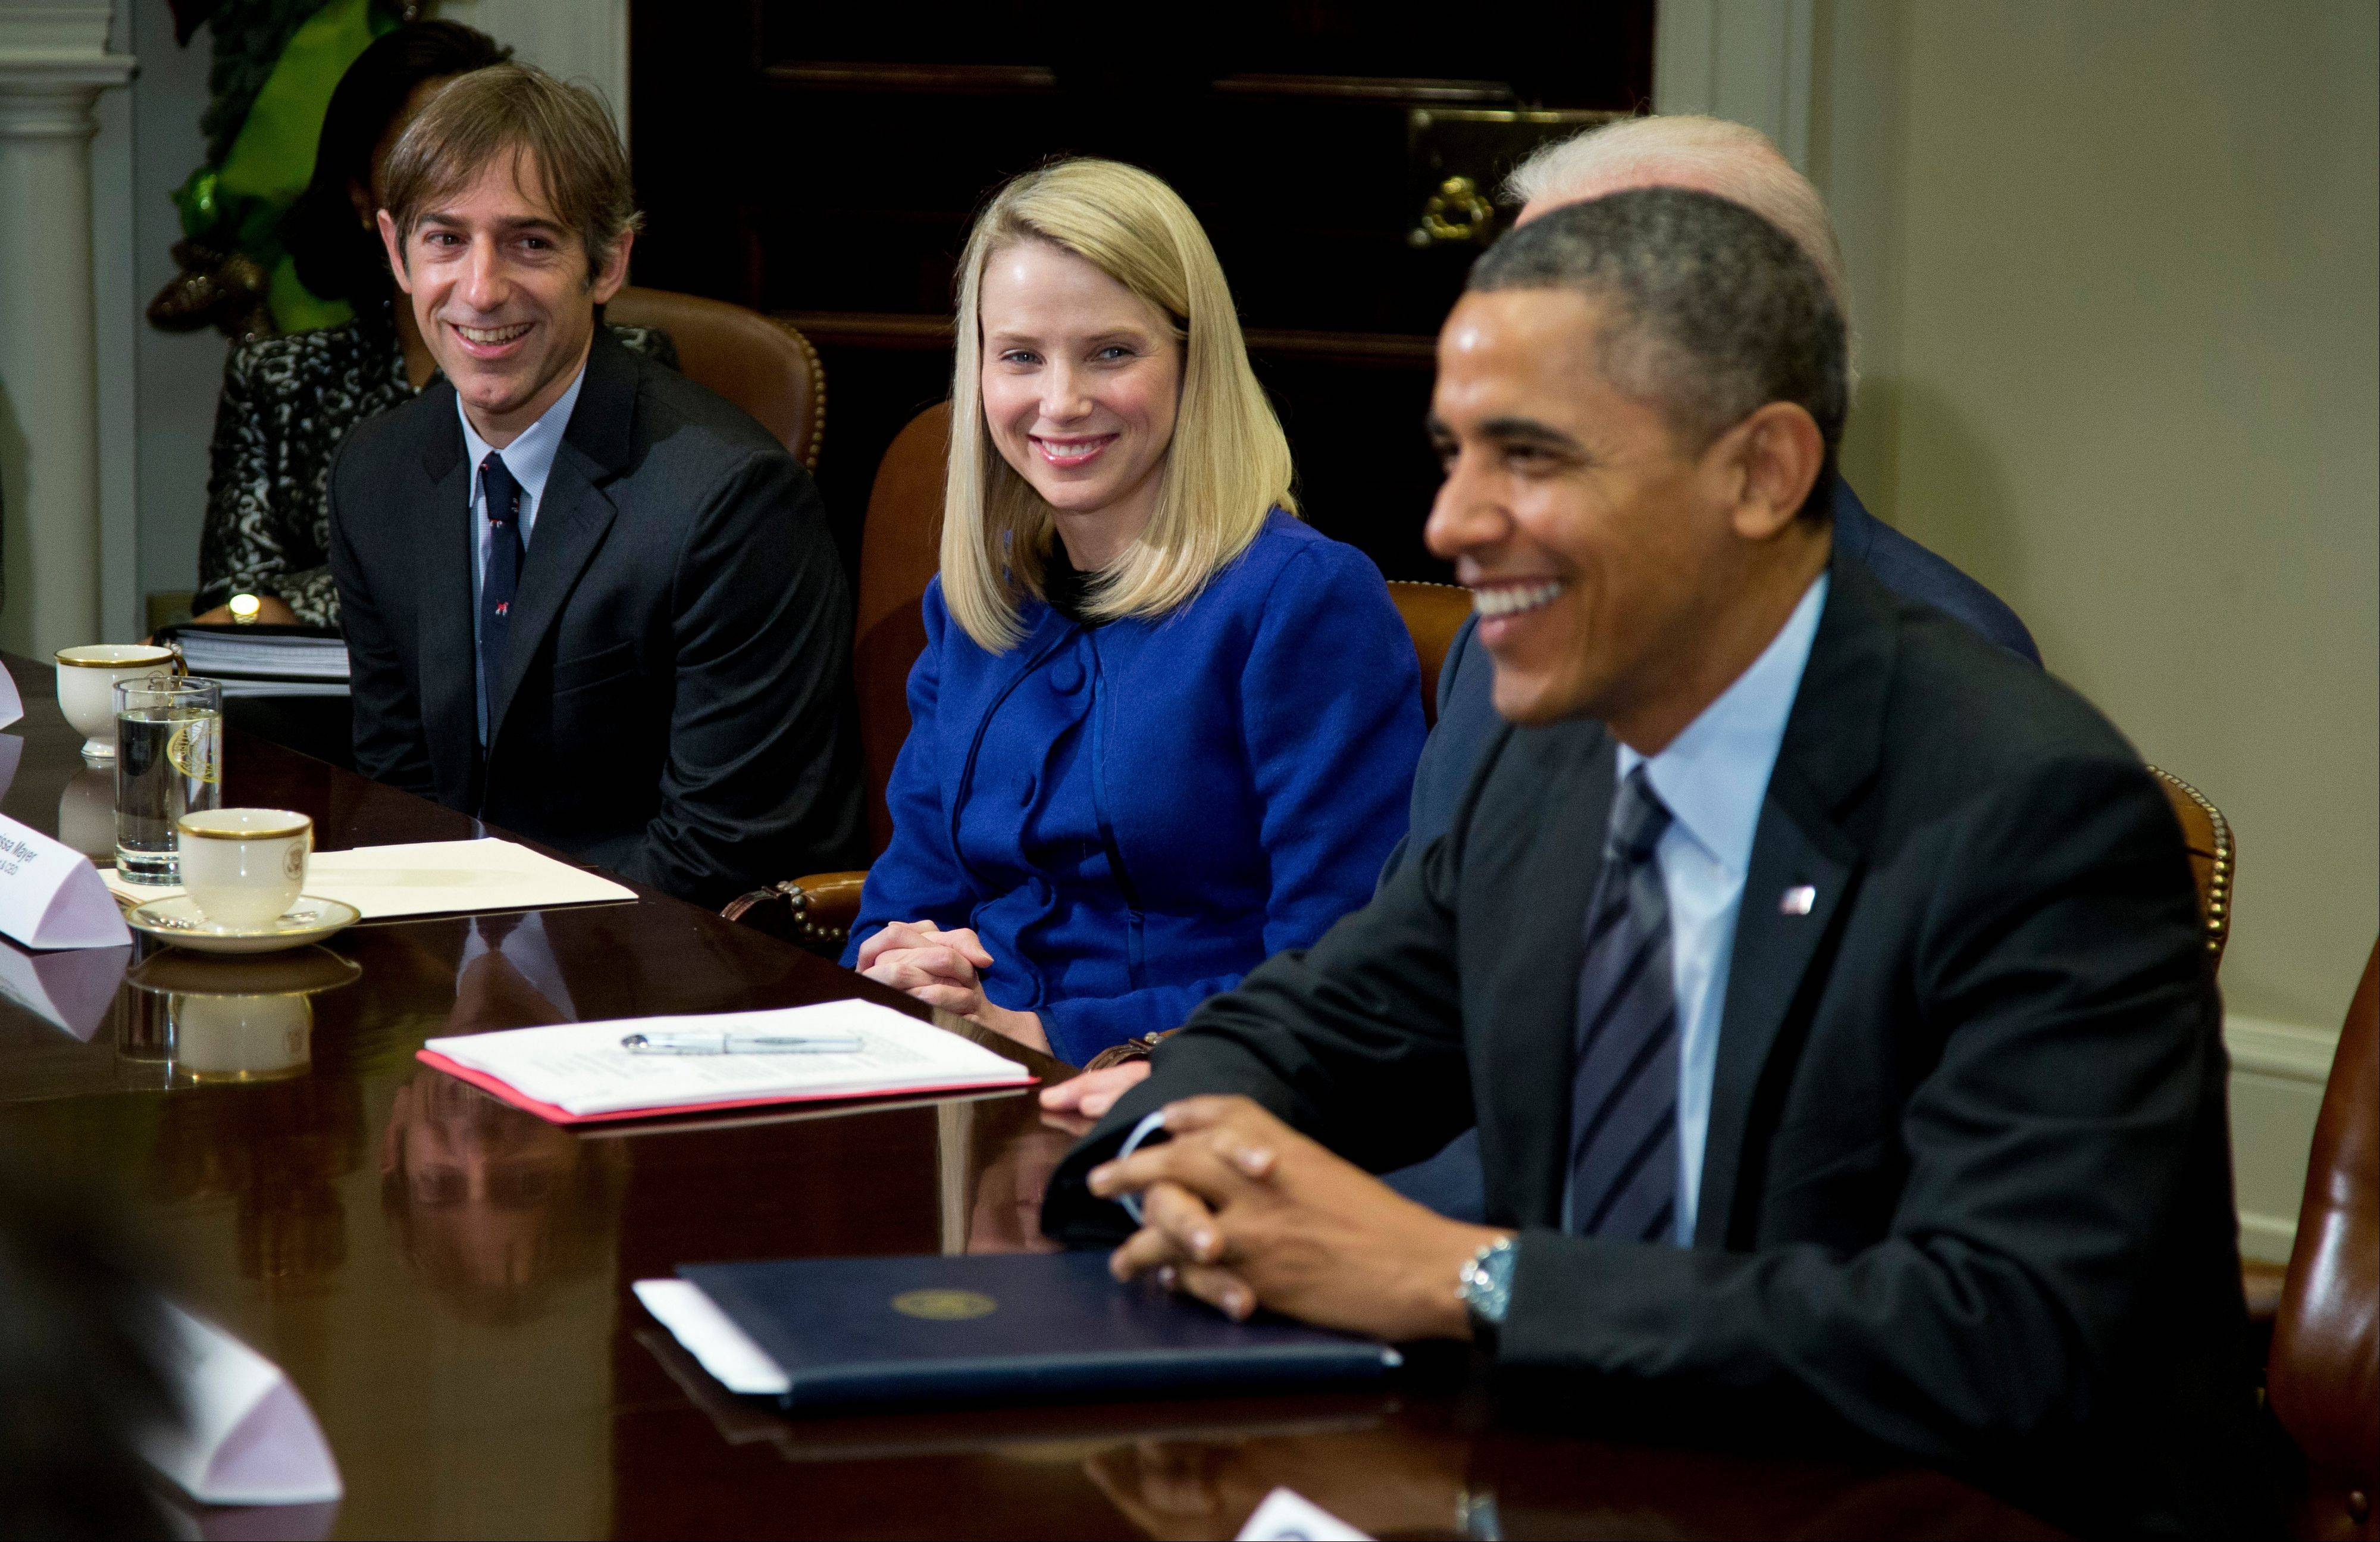 President Barack Obama meets with technology executives at the White House on Tuesday. From left are, Zynga founder Mark Pincus and Yahoo CEO Marissa Mayer.